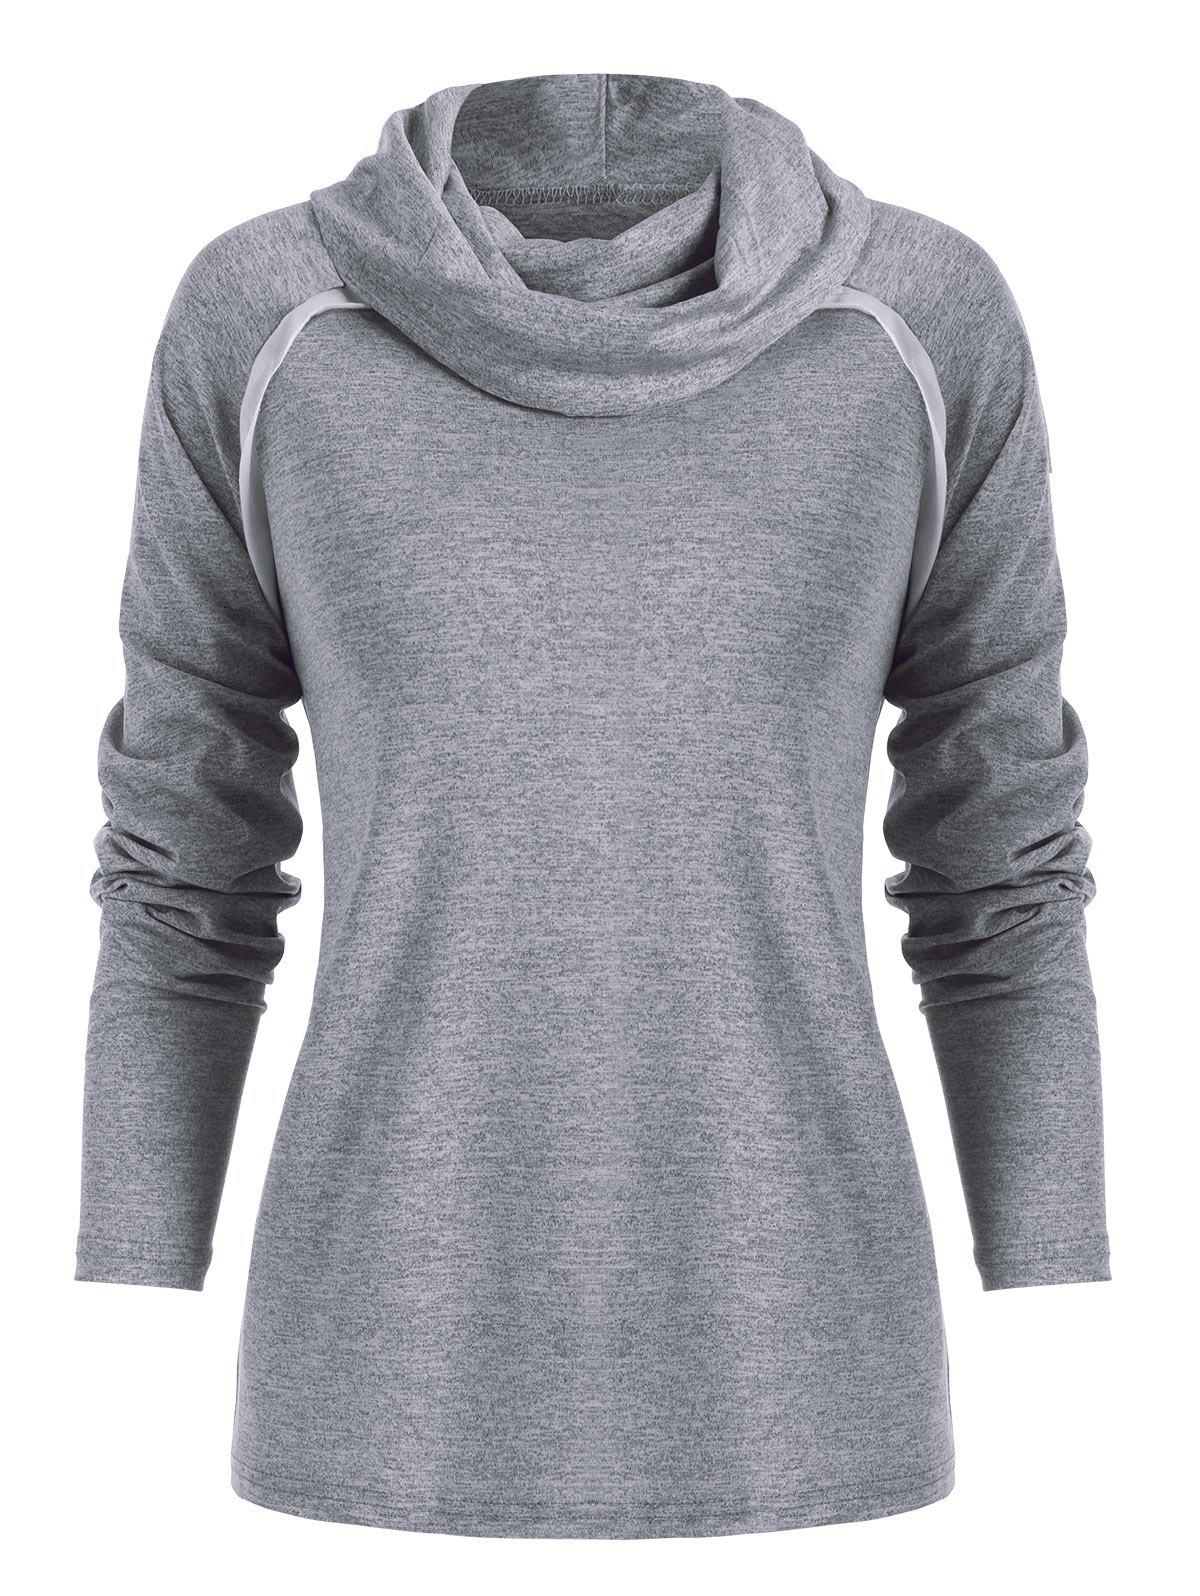 Cowl Neck Marled Two Tone T Shirt - GRAY S